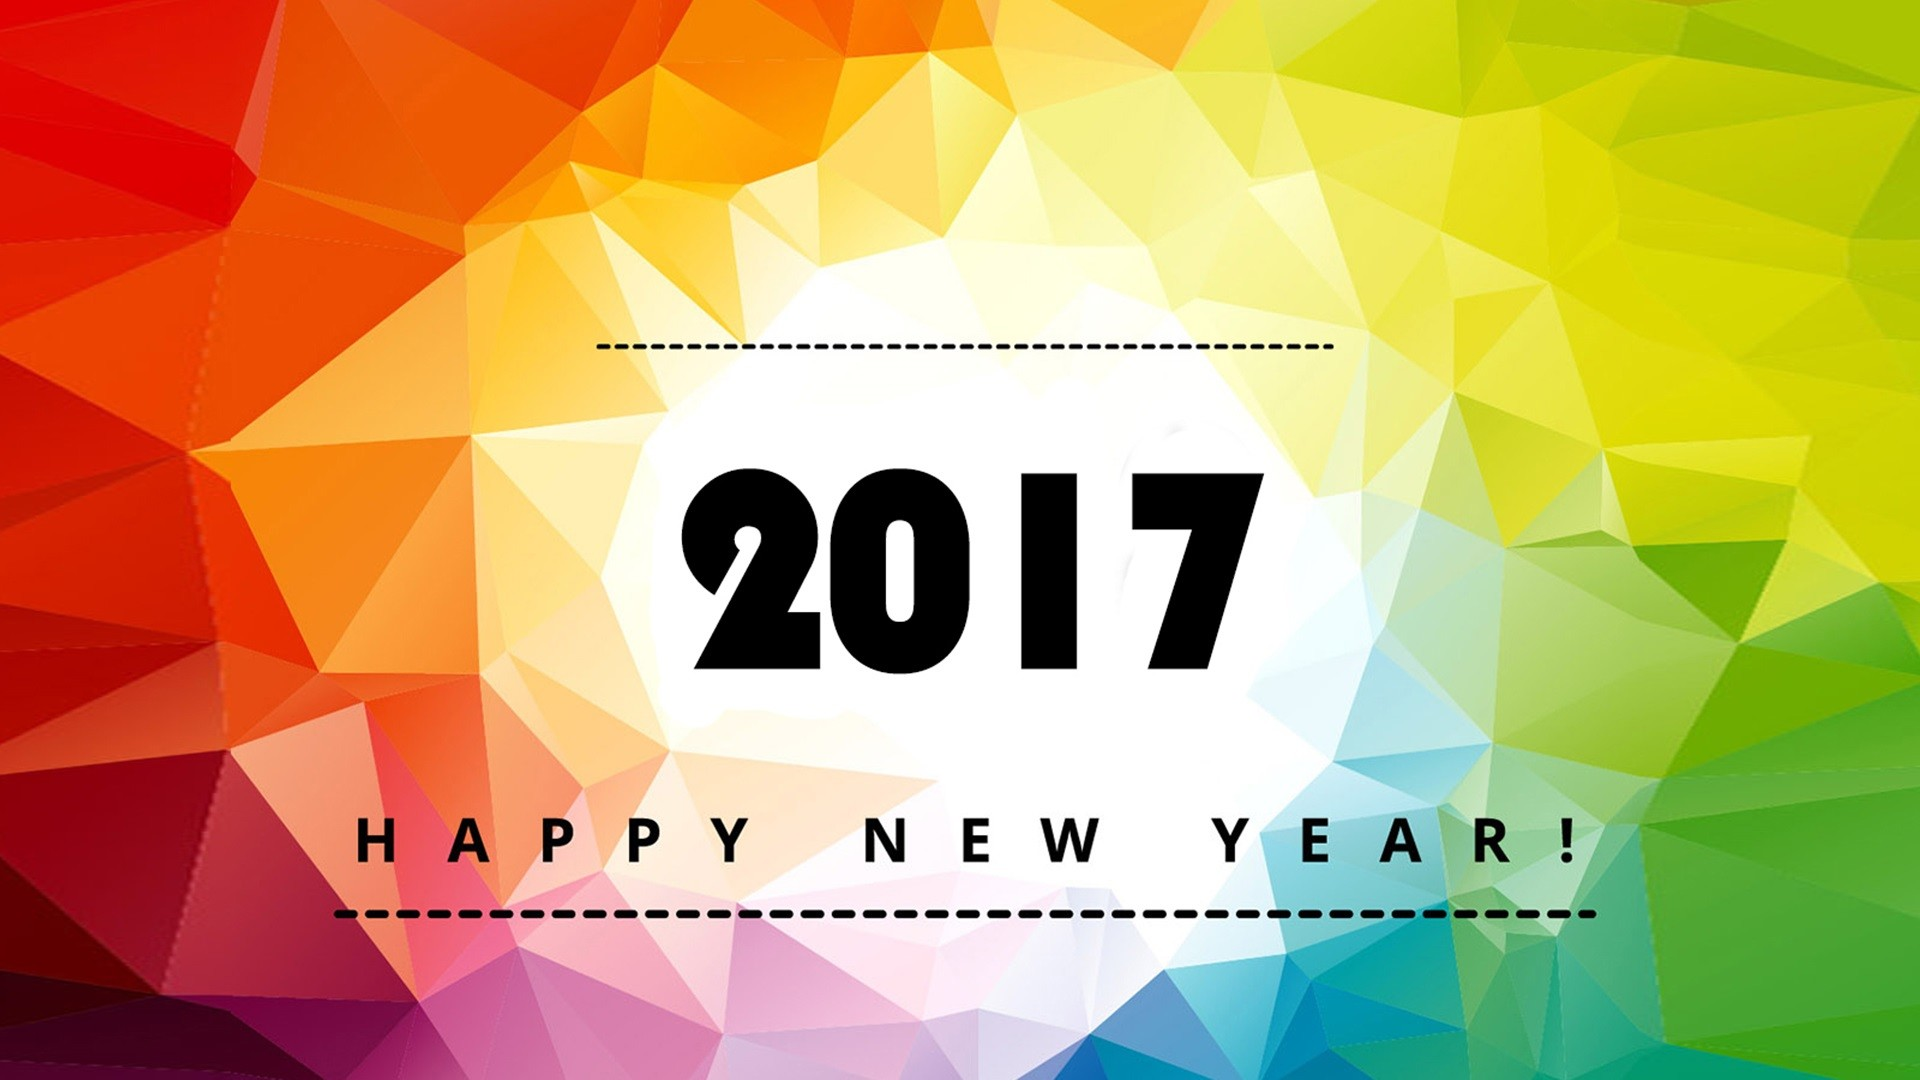 Wallpapers happy new year 2017 1920×1080